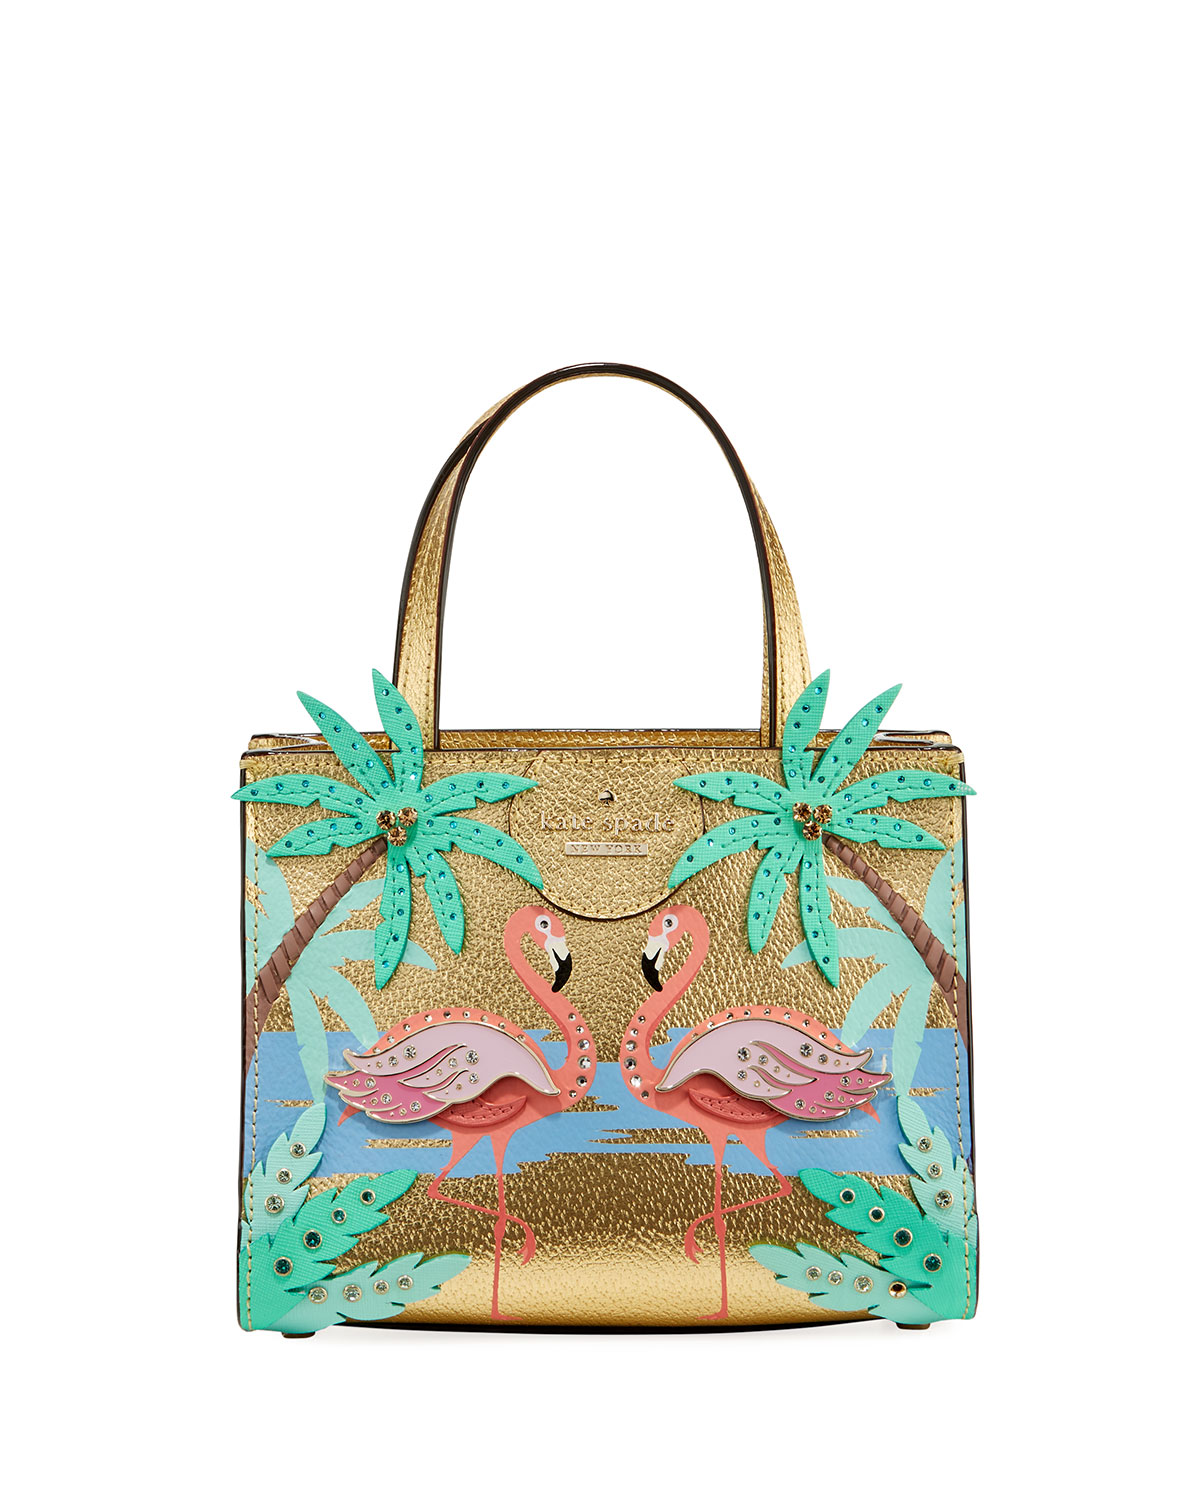 42f2e2e4540e kate spade new york by the pool flamingo scene small sam satchel bag ...